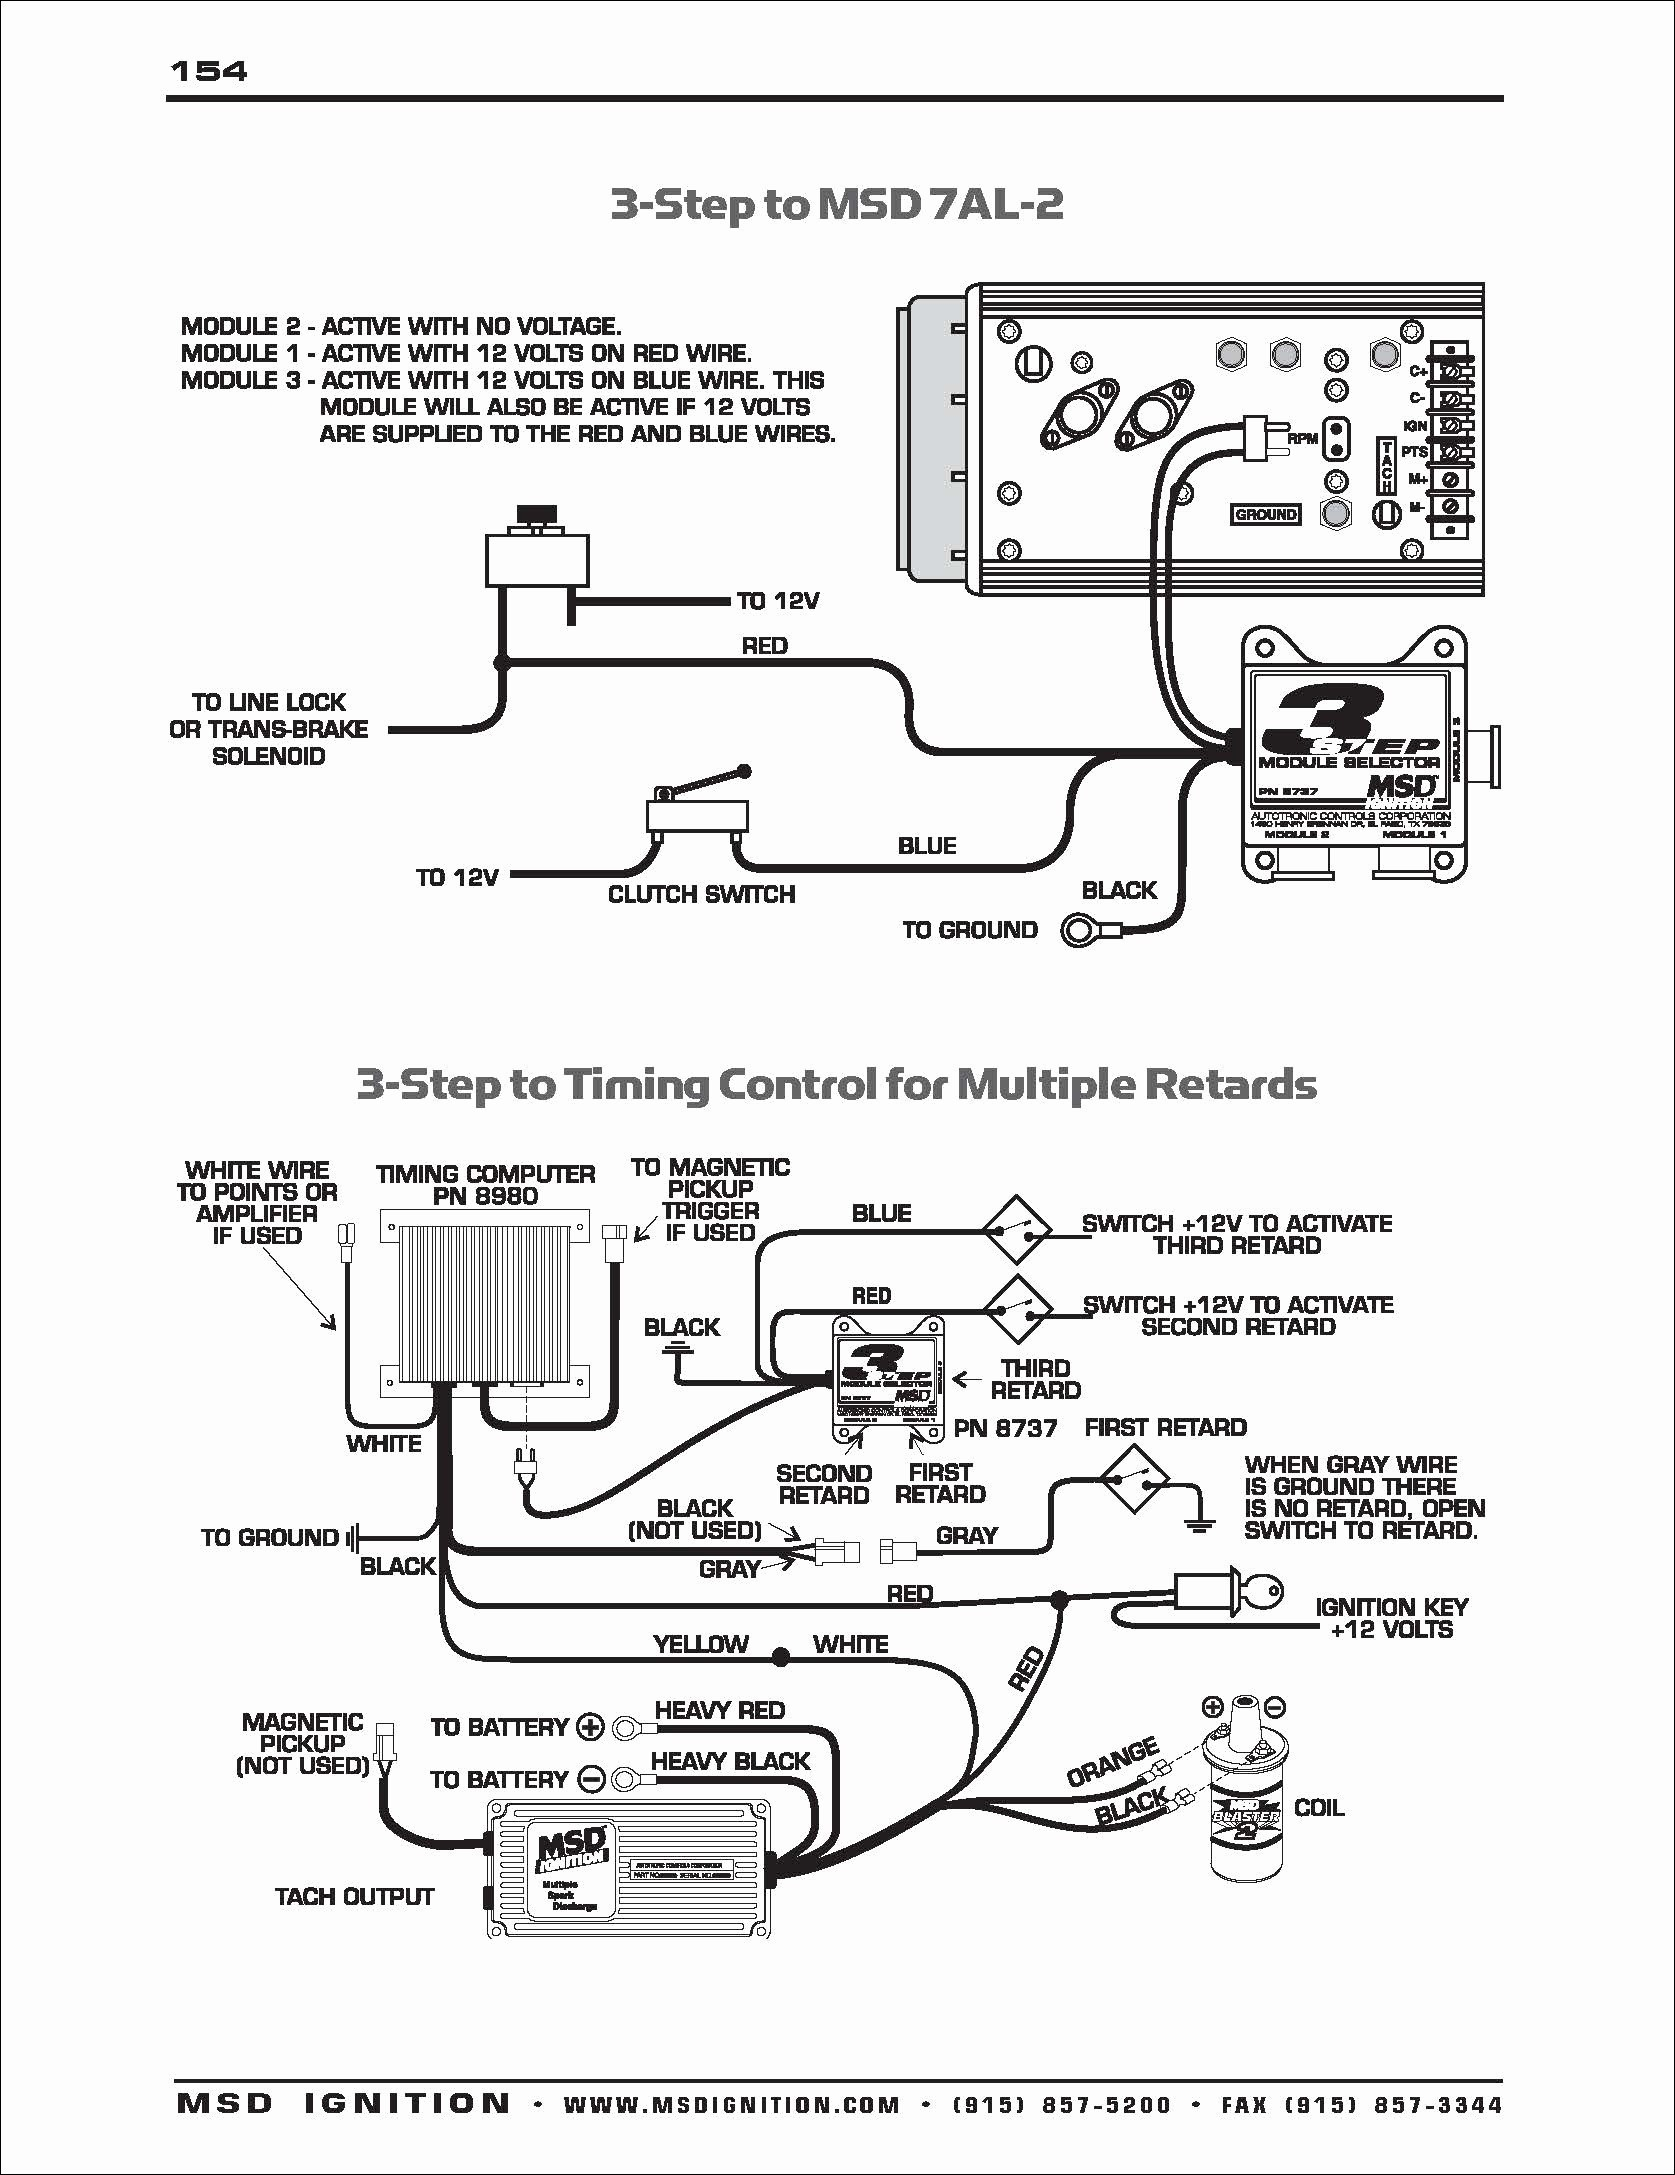 Small Engine Diagram Labeled Kohler Ignition Switch Wiring Diagram Valid Small Engine Ignition